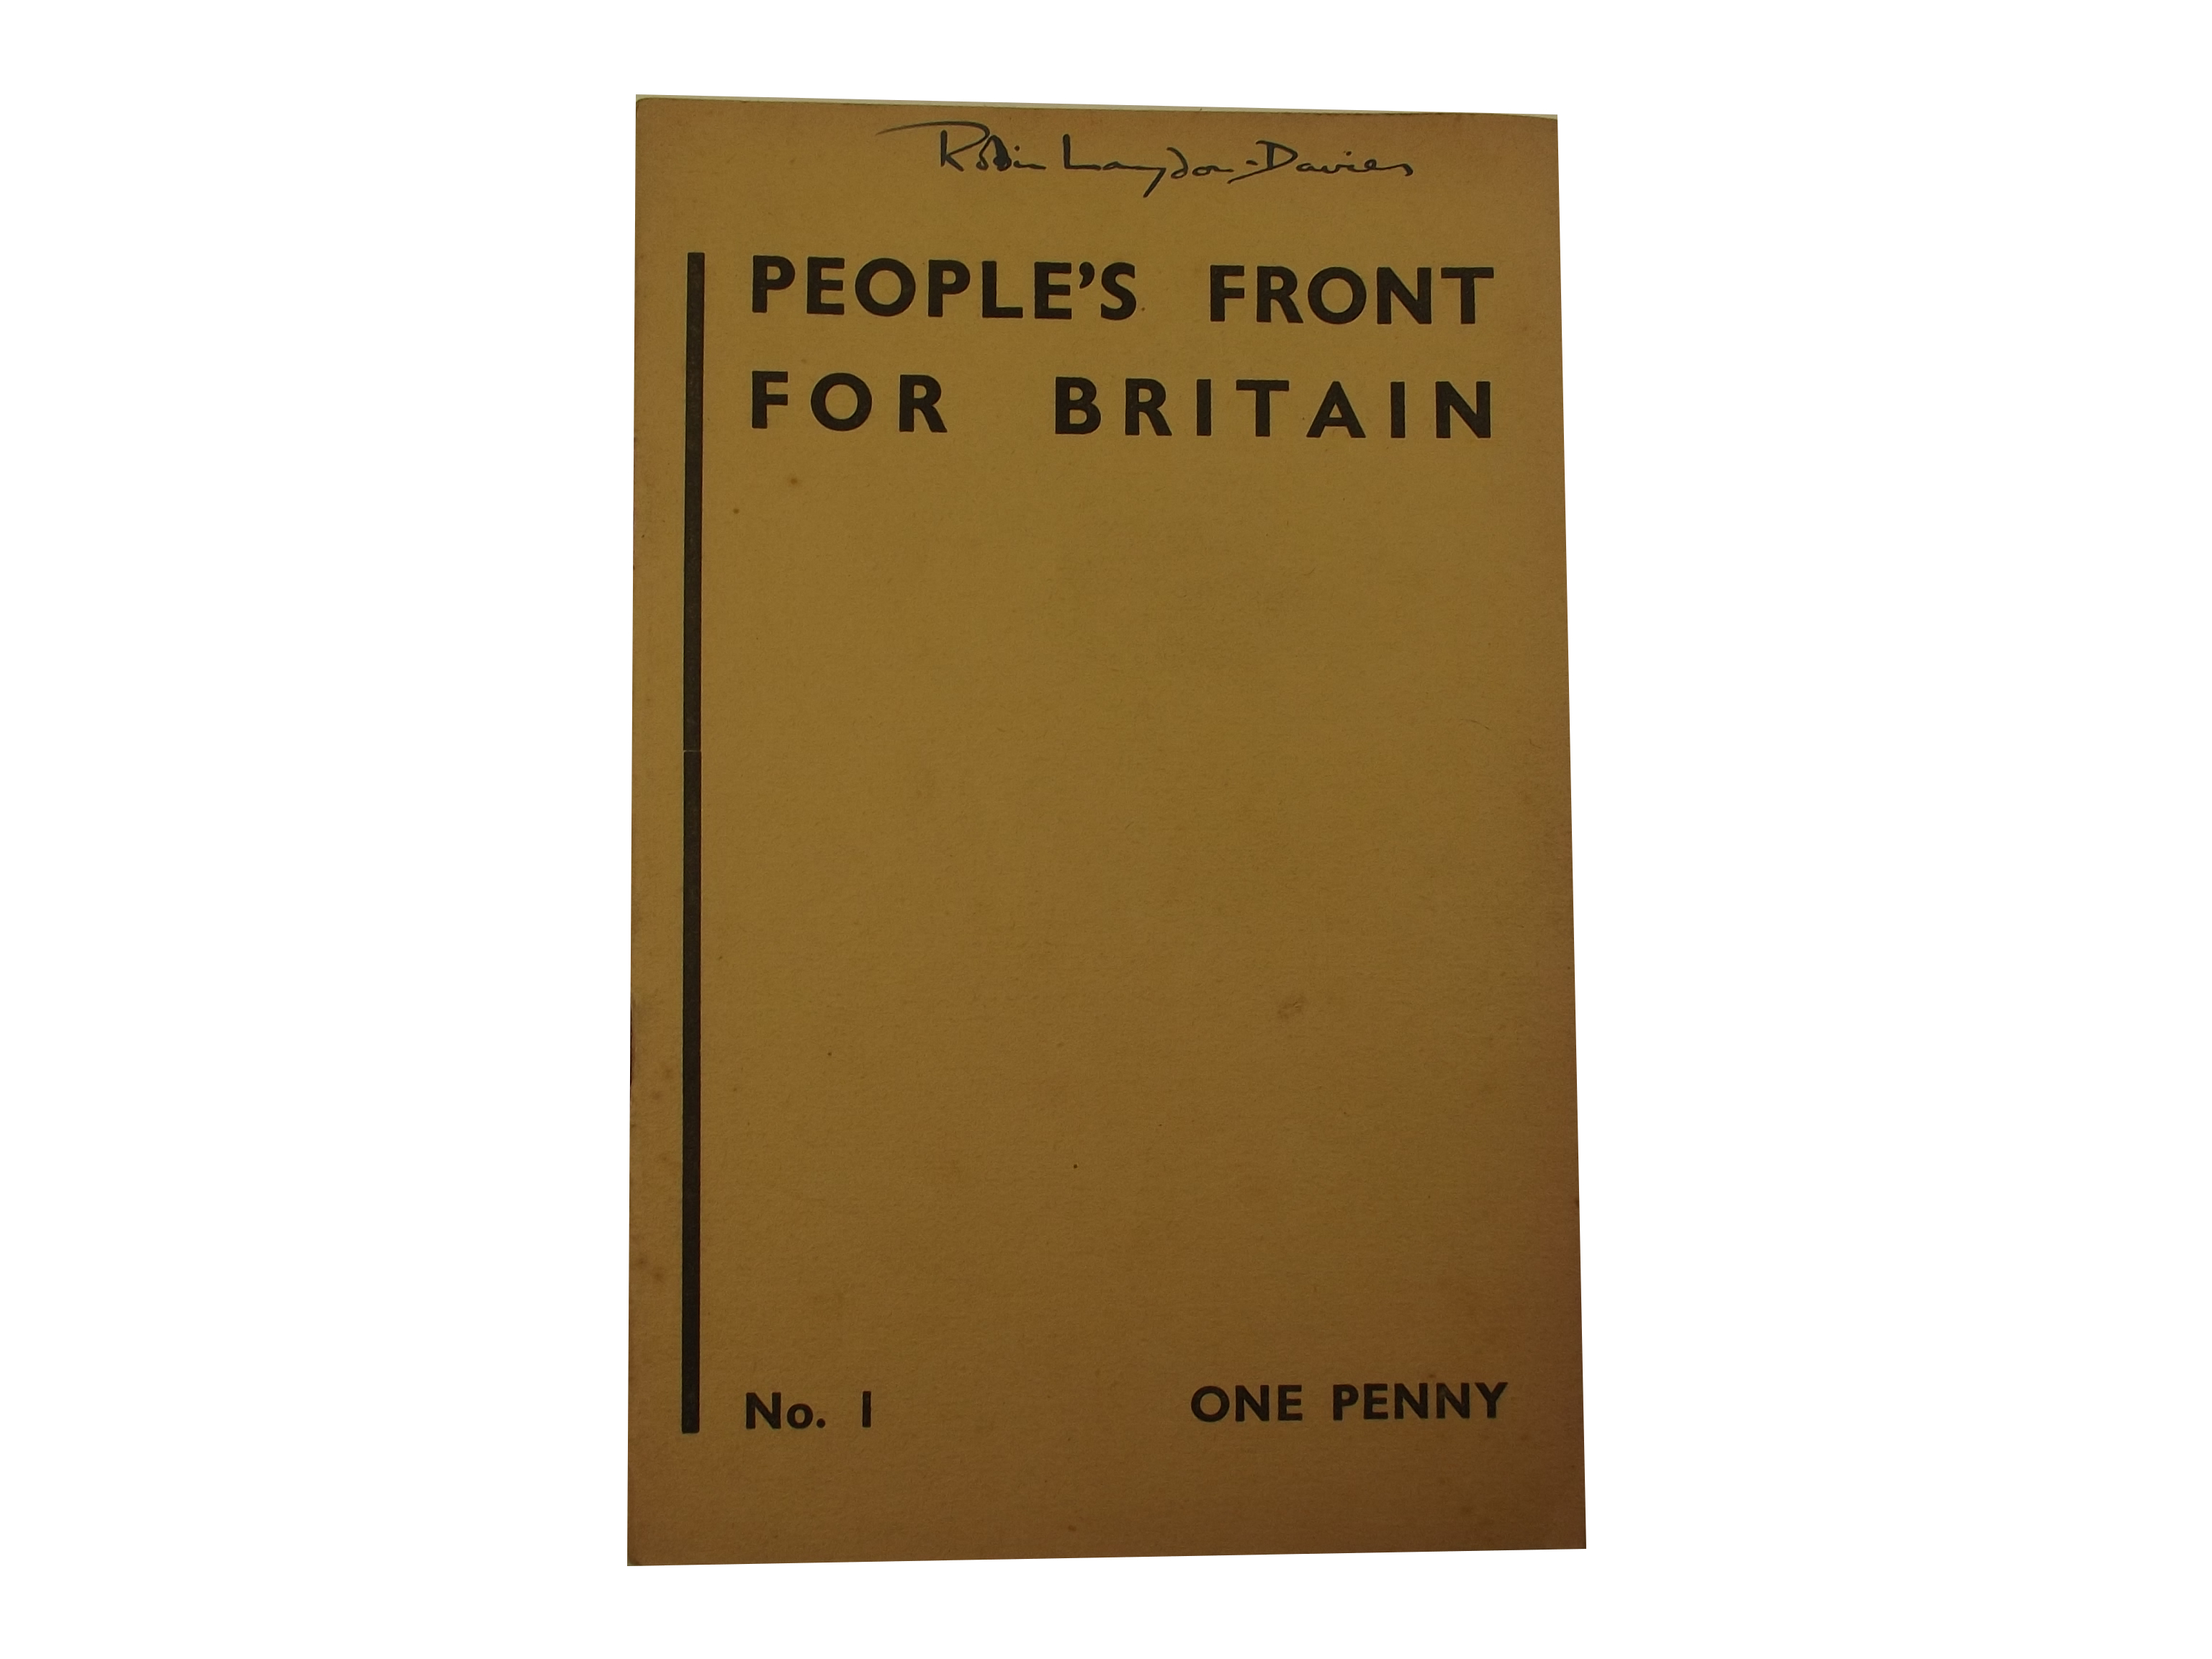 People's Front for Britain pamphlet